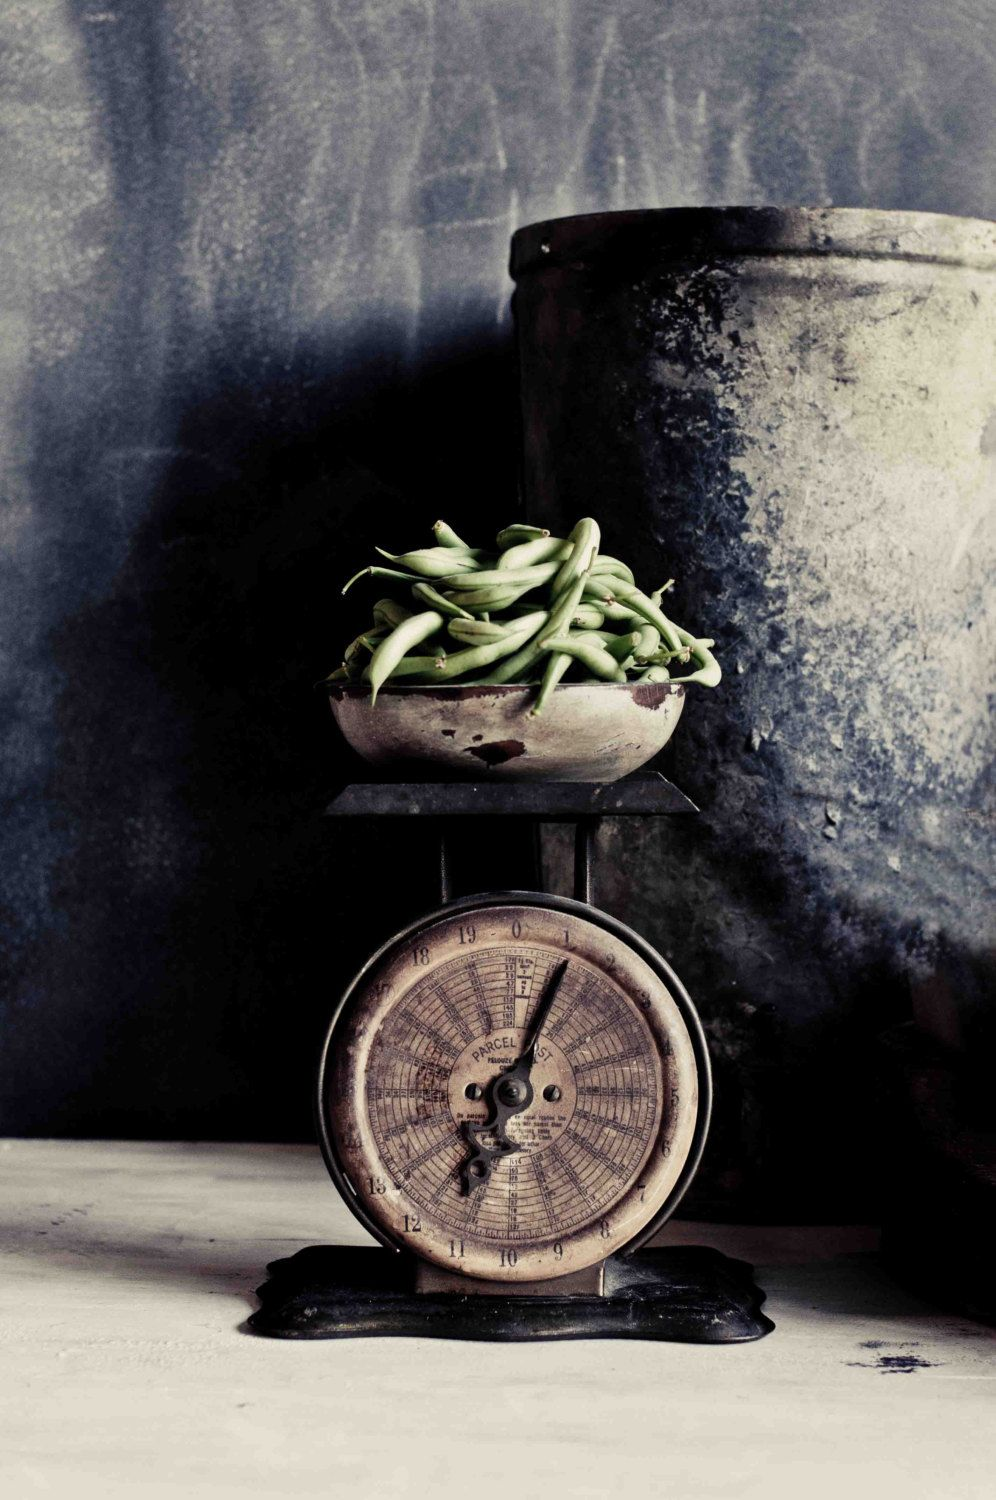 Food Photography, Green Beans Photo, Black and White Photography, Still Life, Rustic, Kitchen Decor, Fine Art Photography, Vegetable Photo by StephanieSchamban on Etsy